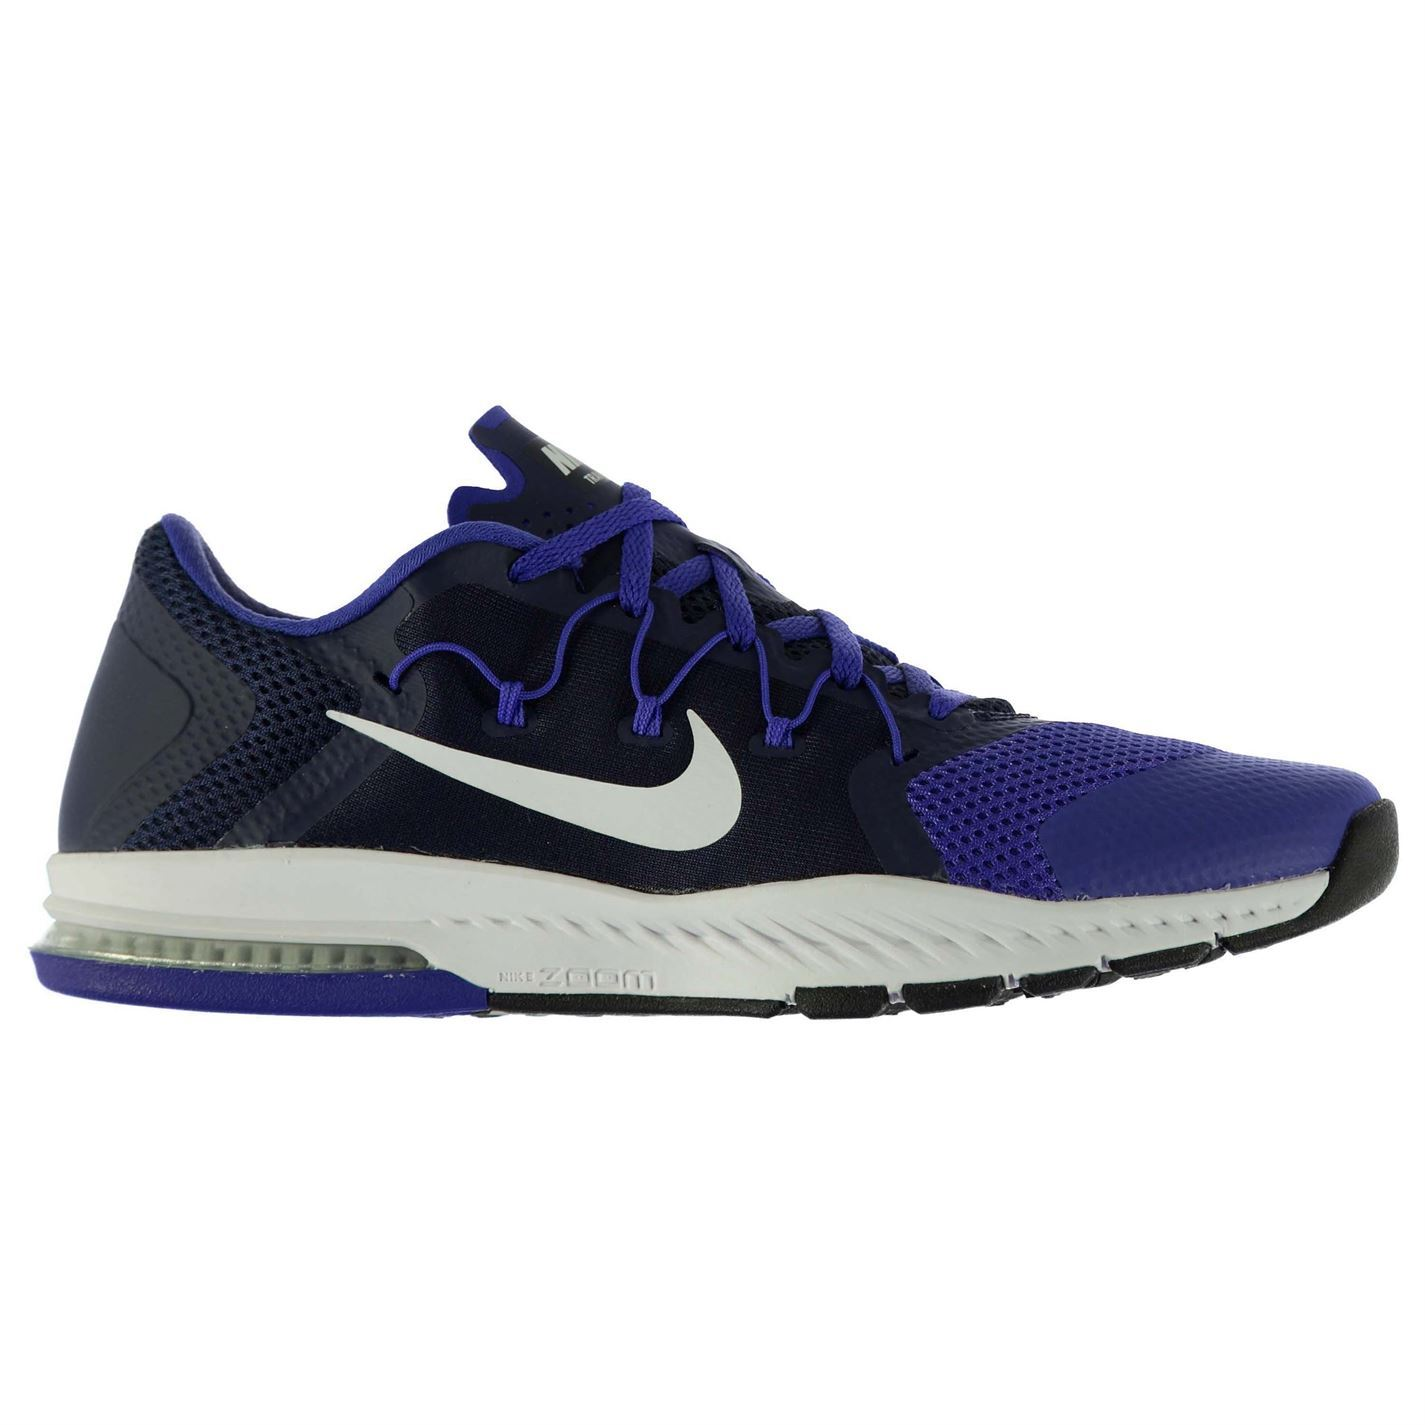 Nike Zoom Train Trainers Homme Bleu/Blanc Sports Chaussures Sneakers Footwear